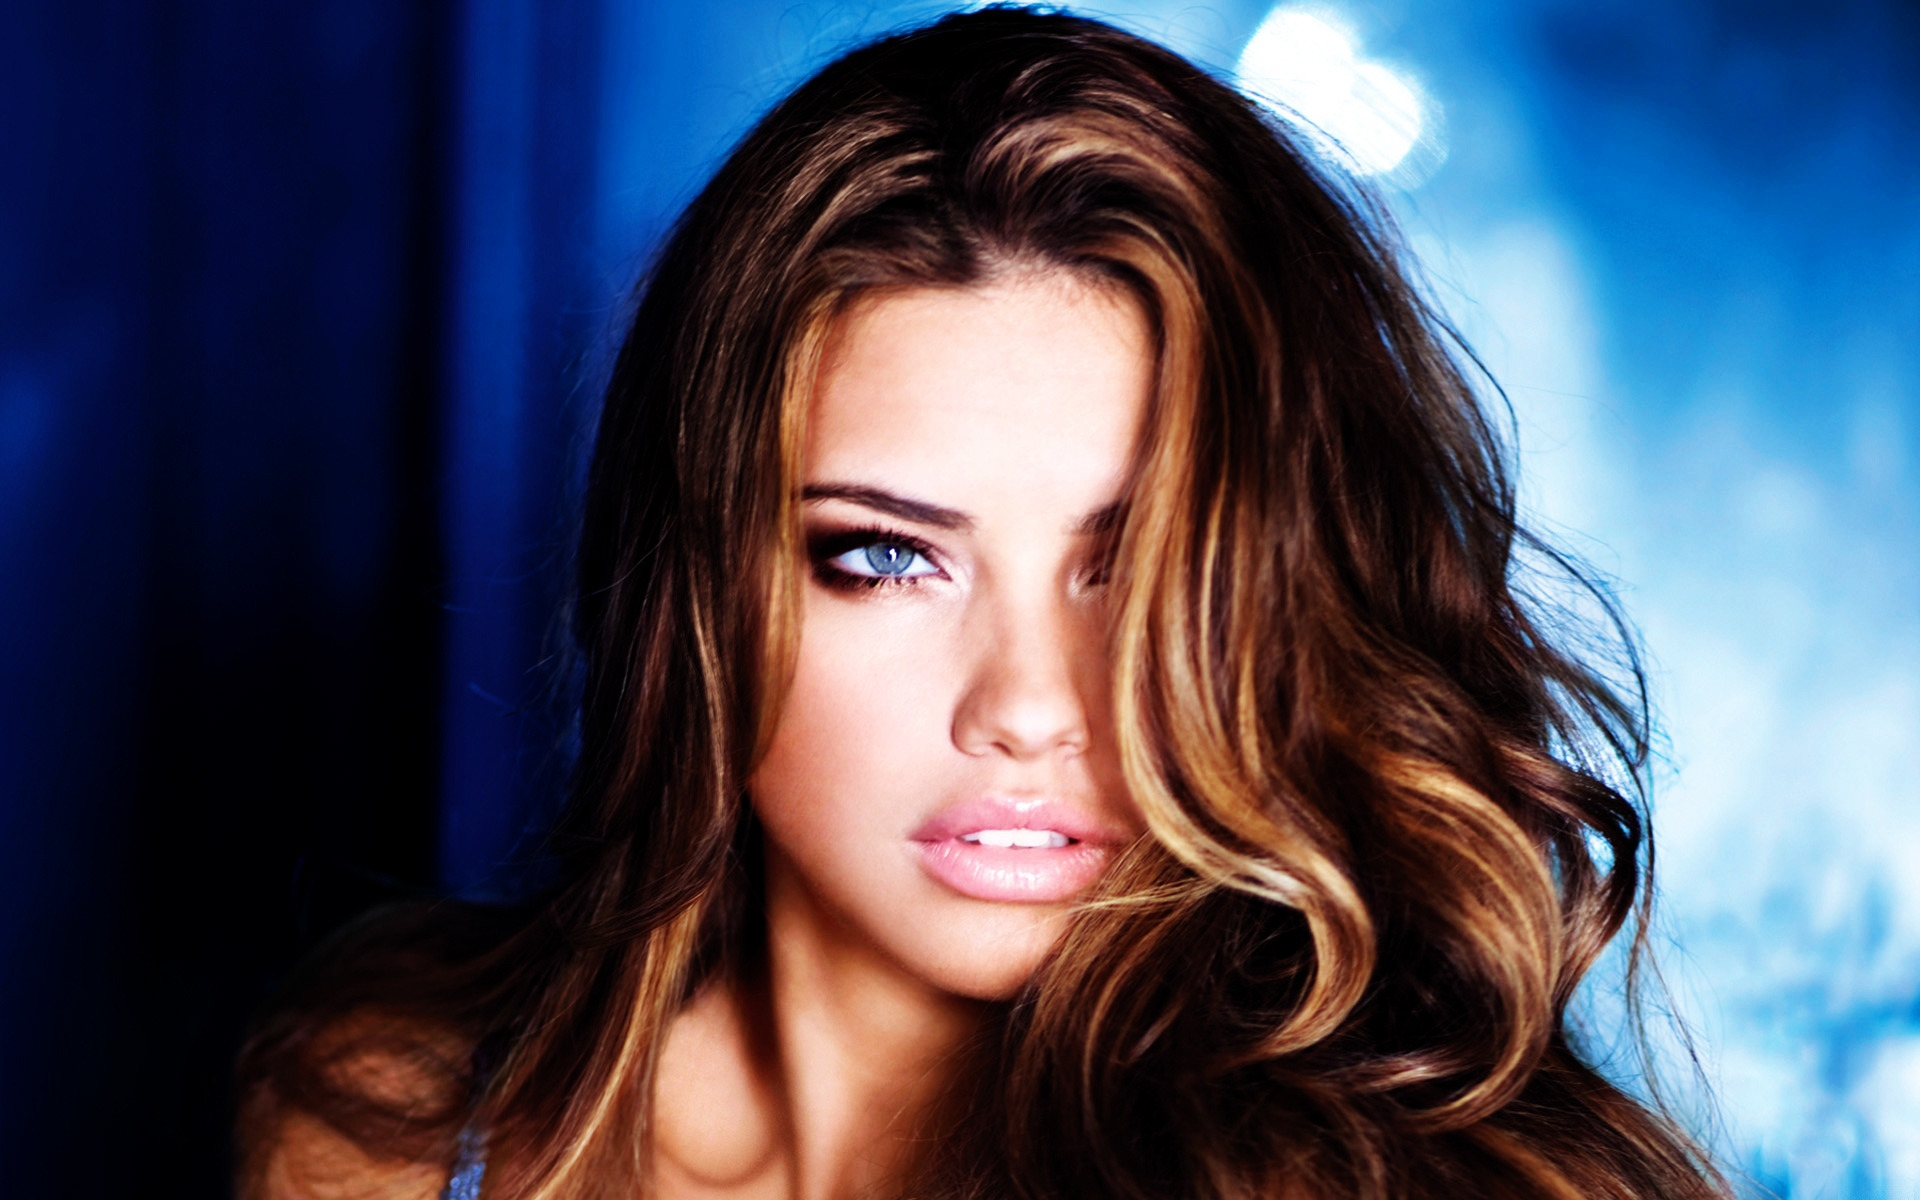 Adriana Lima Style for 1920 x 1200 widescreen resolution